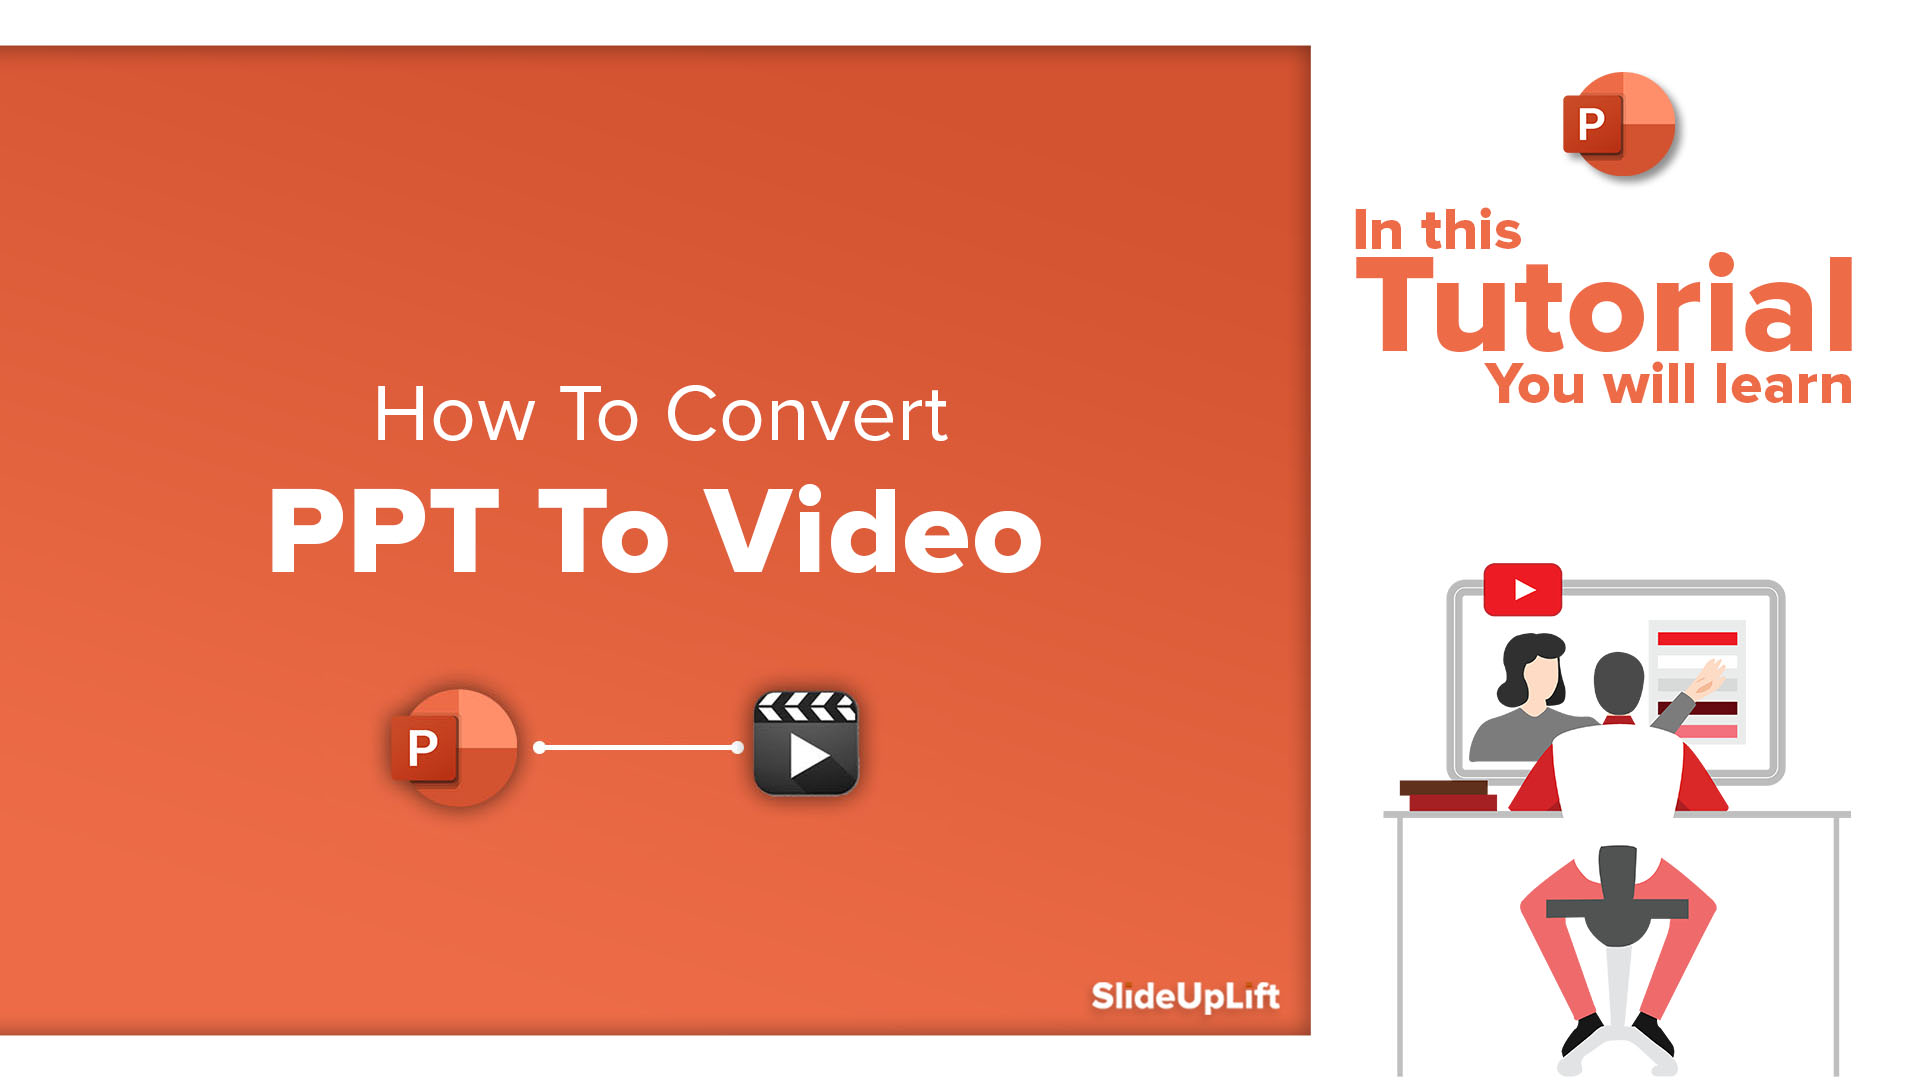 How To Convert PPT To Video | Presentation to Video | PowerPoint Tutorial